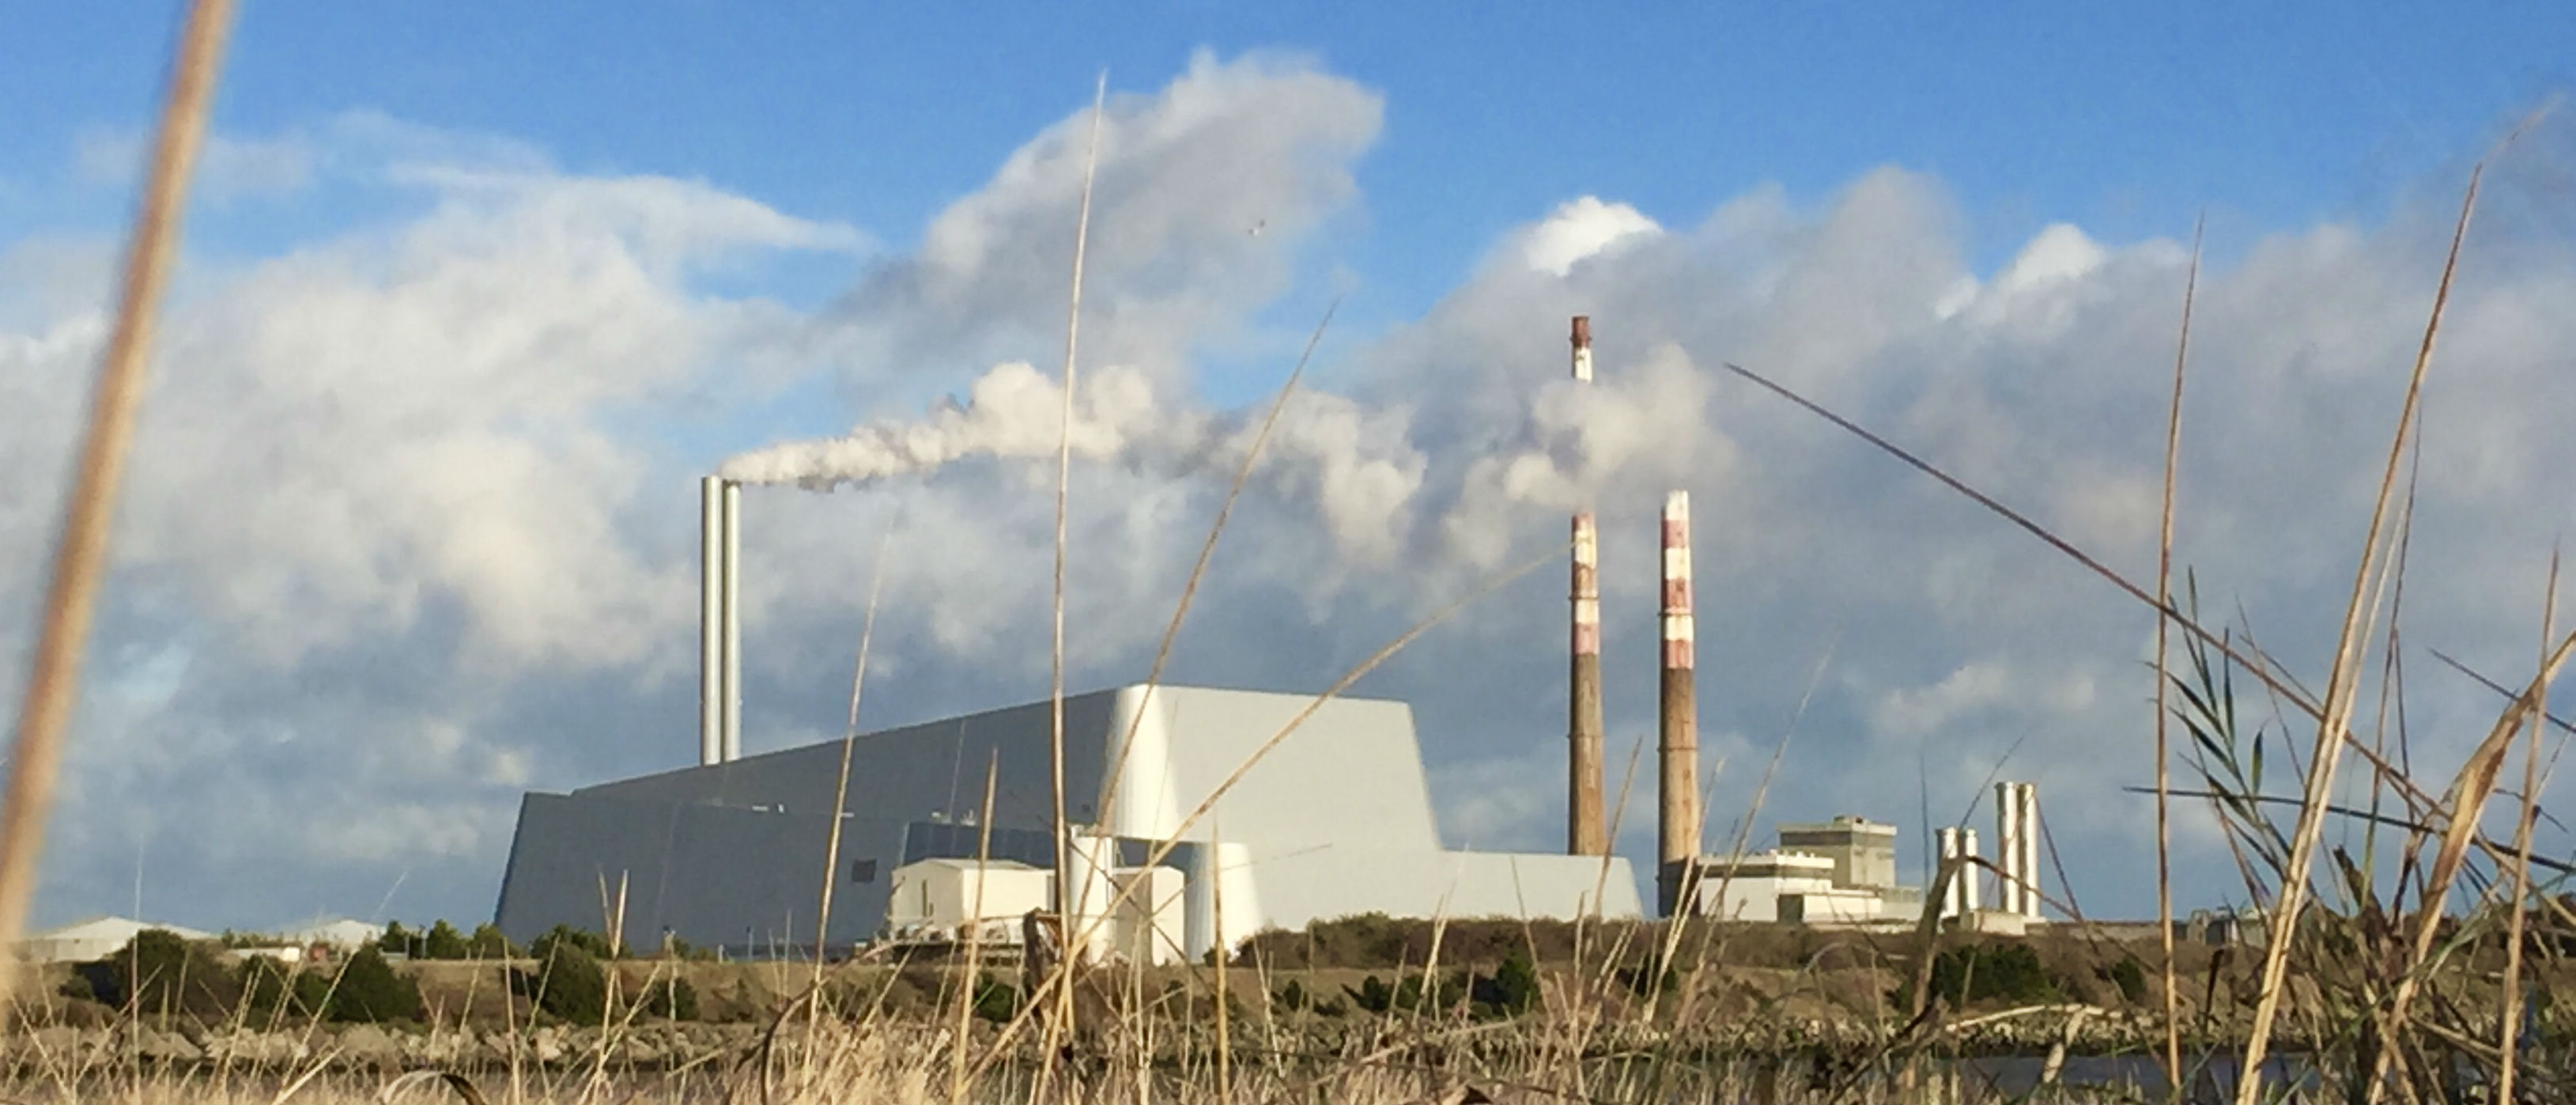 Locals Concerned Over Poolbeg Capacity Increase